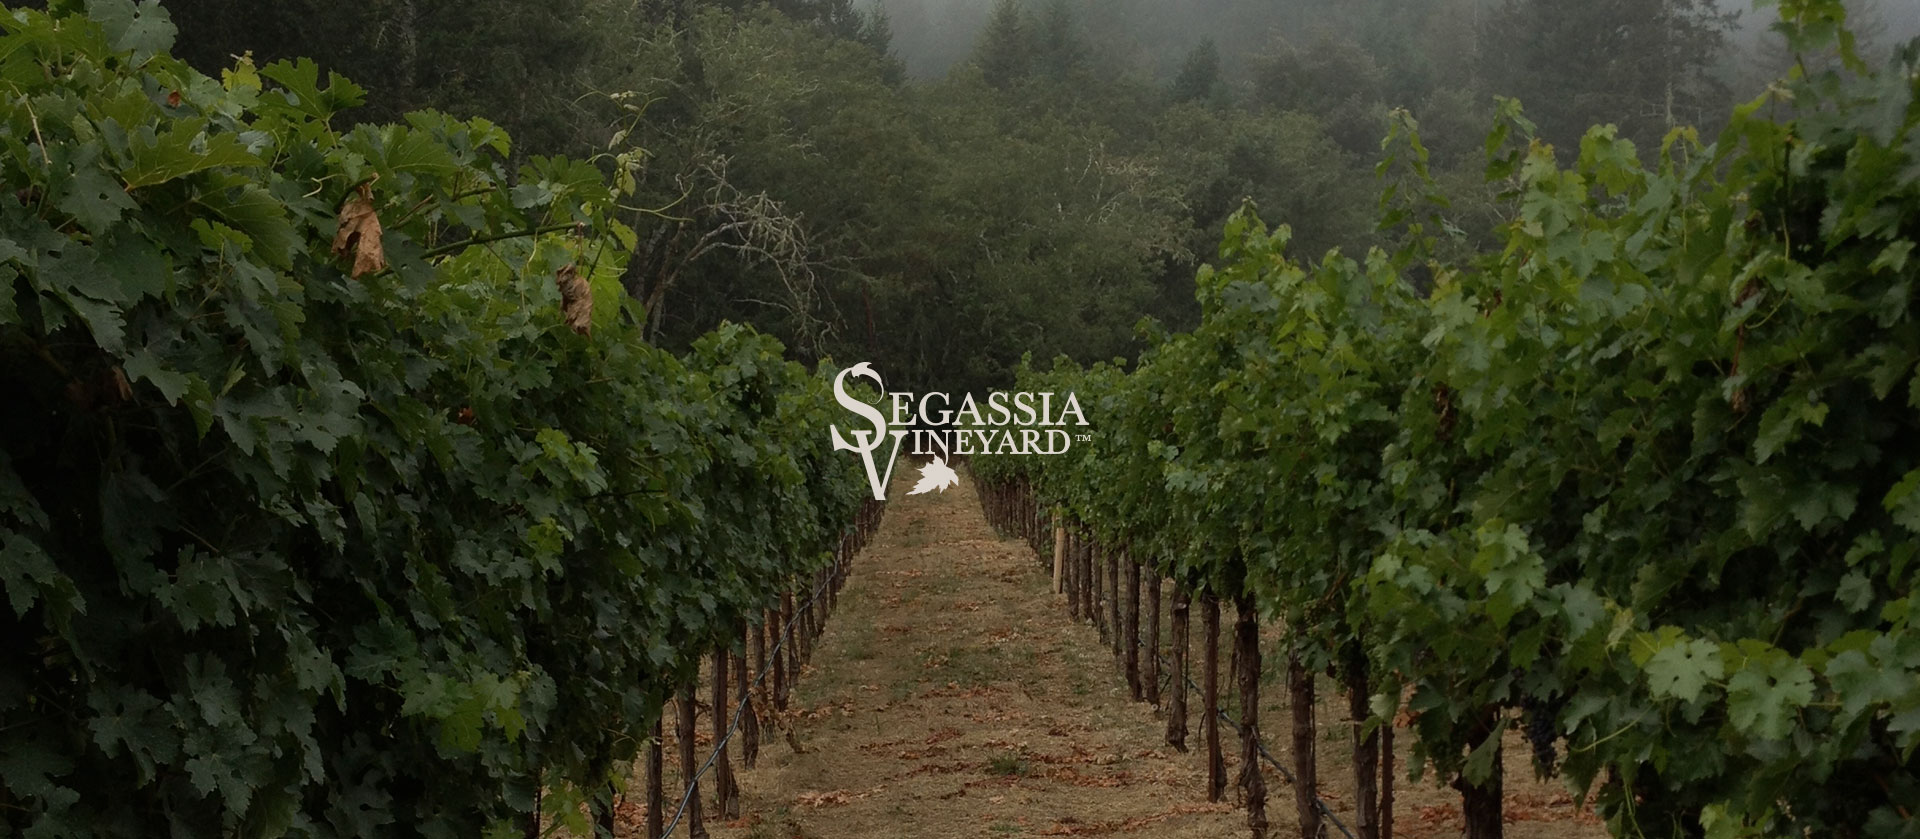 Segassia-Vineyard-Hero